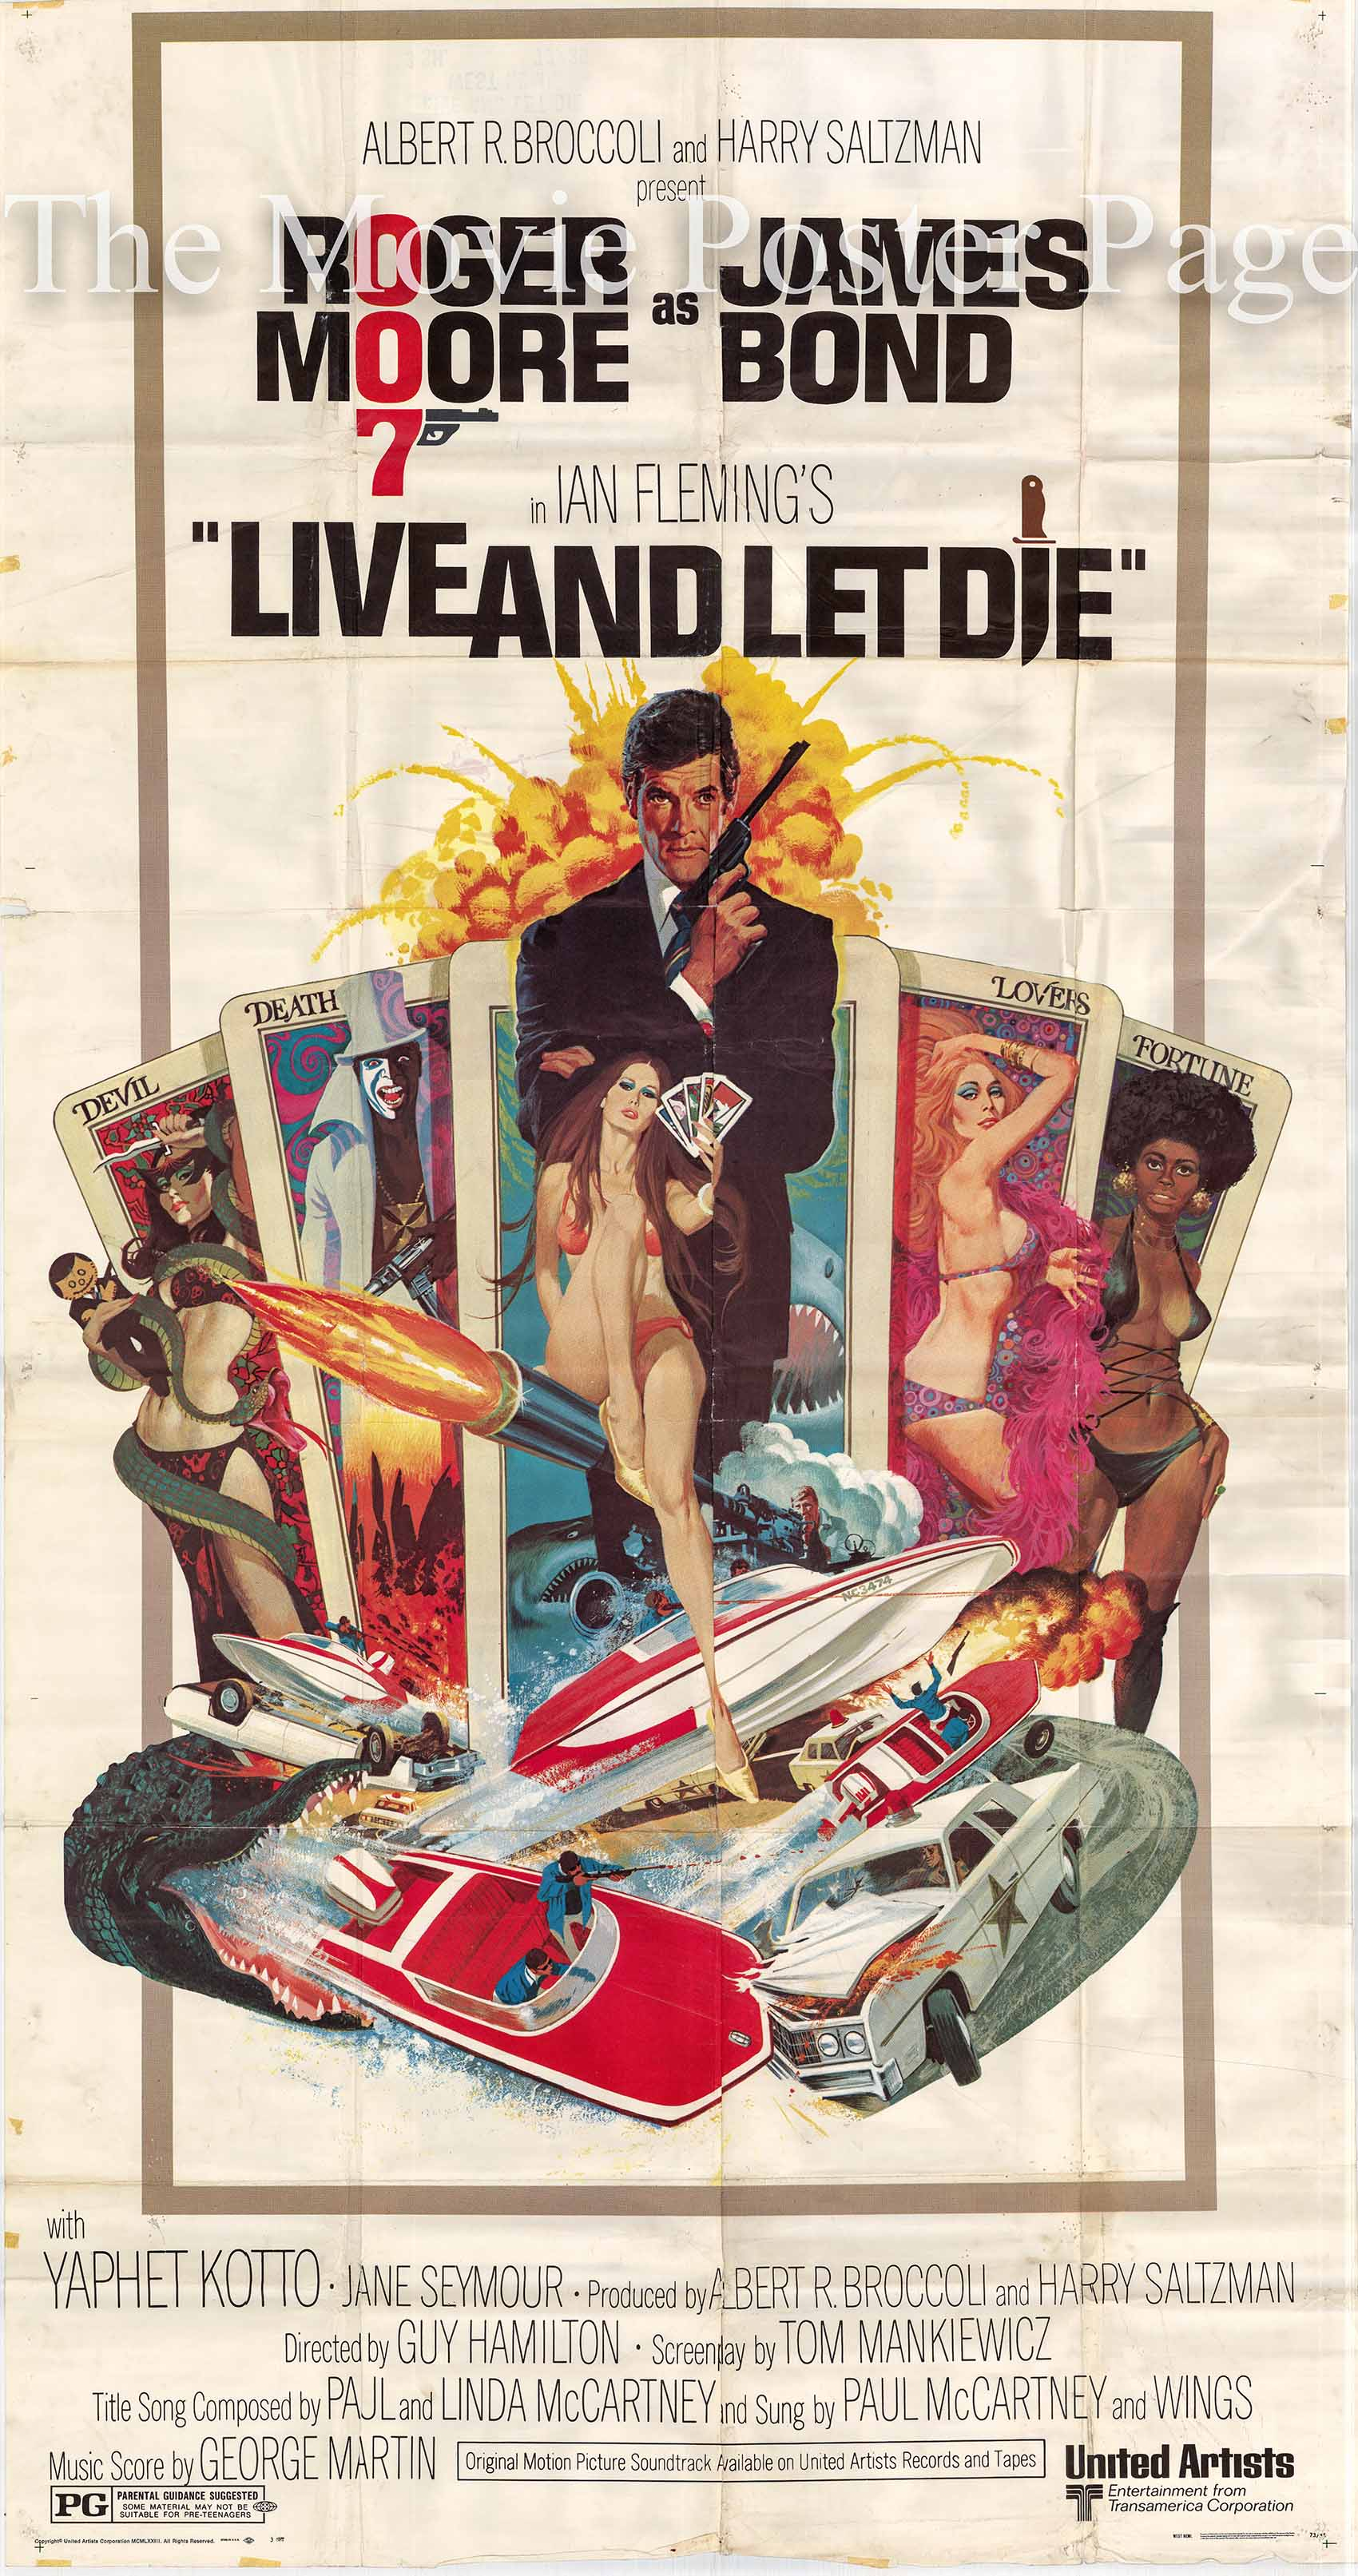 Pictured is a US three-sheet promotional poster for the 1973 Guy Hamilton film Live and Let Die starring Roger Moore as James Bond.